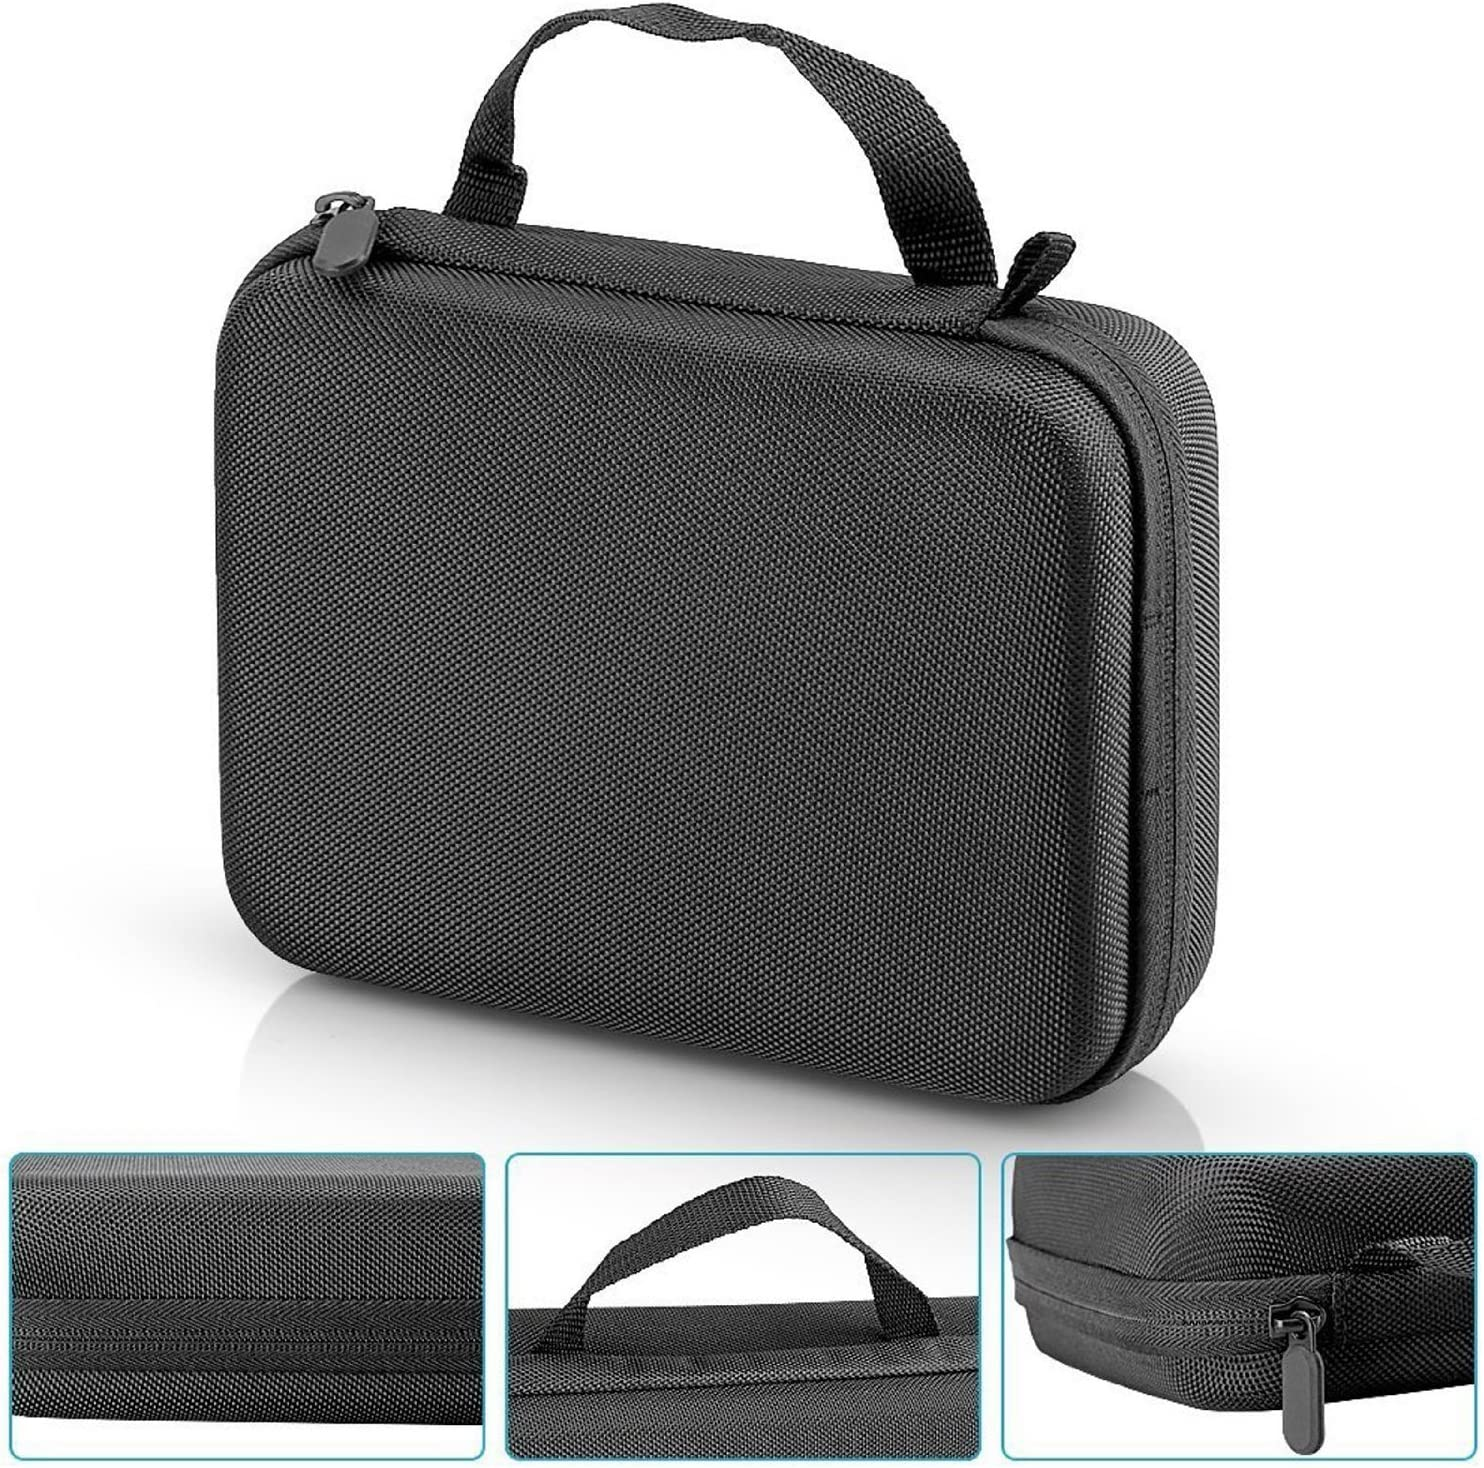 SUNMENCO Portable Large Size Collection Water Resistant Bag Protective Storage Case for GoPro Hero 4//3+//3 Action Cameras Digital Camcorder Accessories